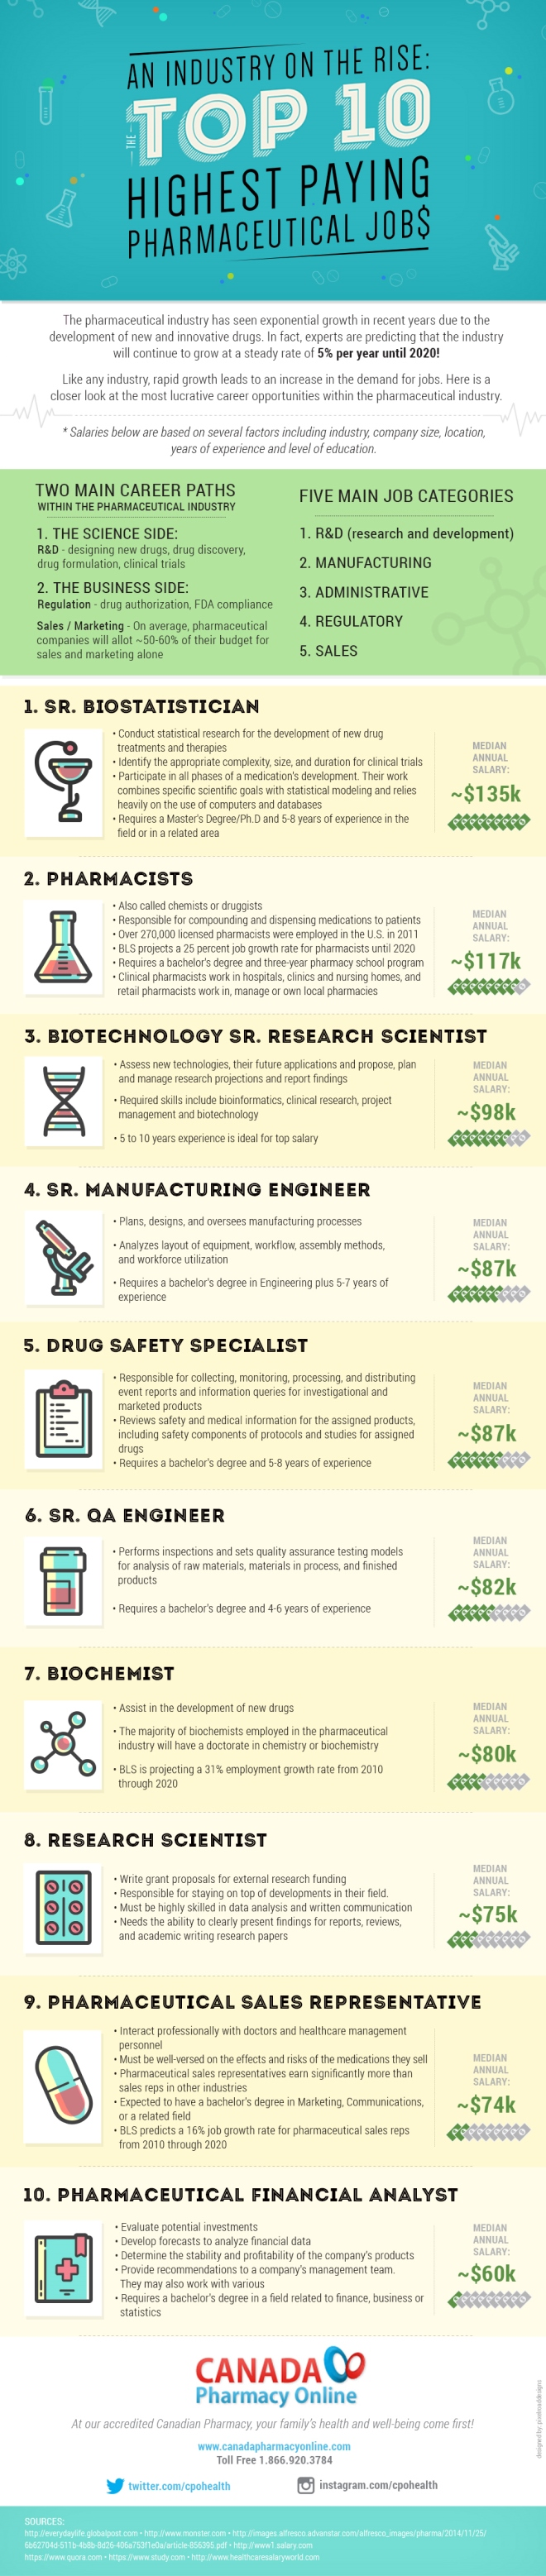 An Industry on the Rise: The Top 10 Highest Paying